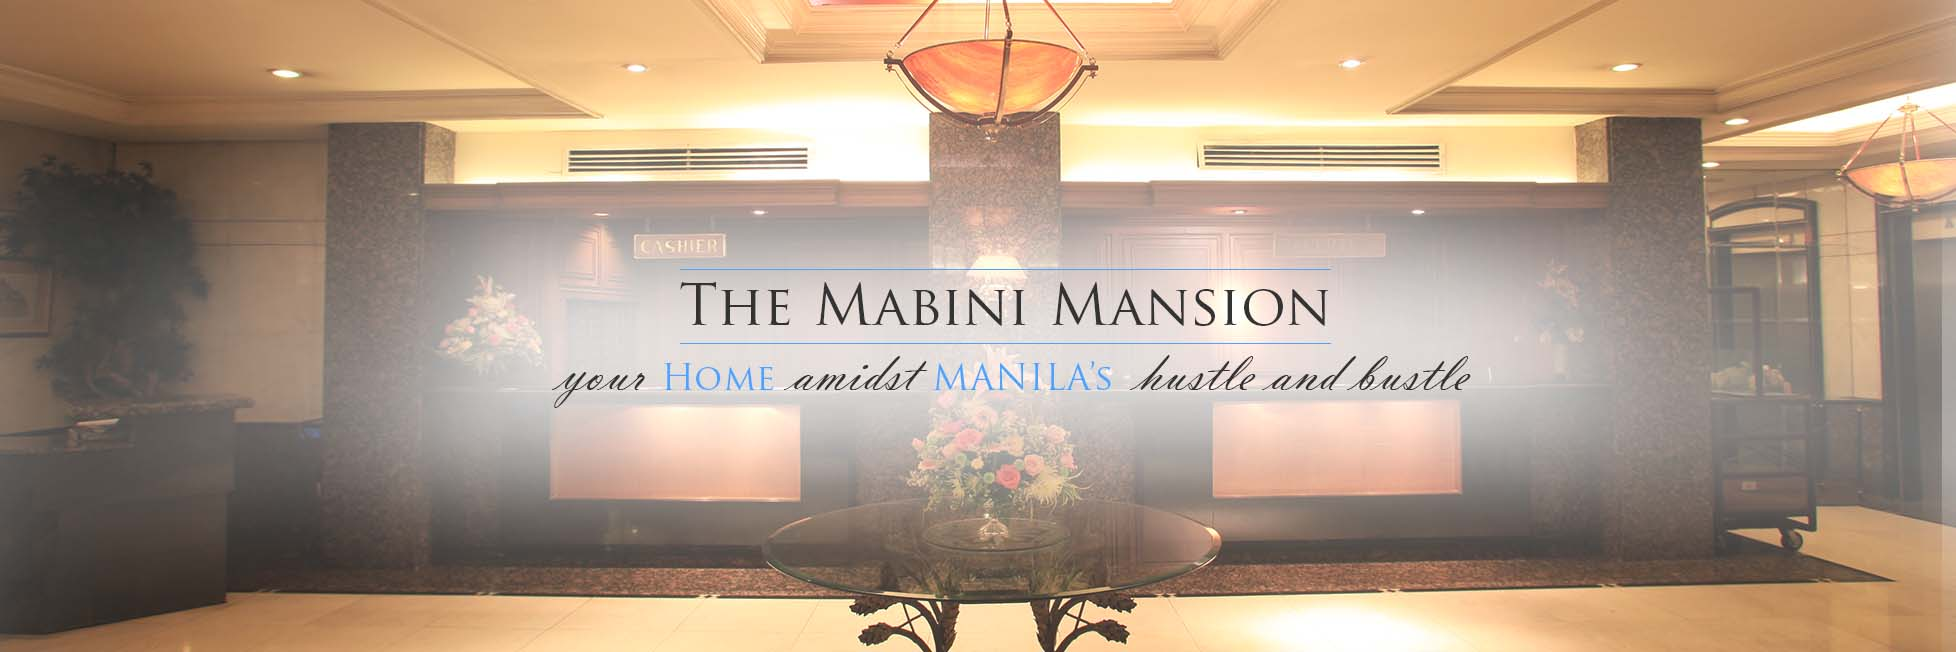 MABINI MANSION